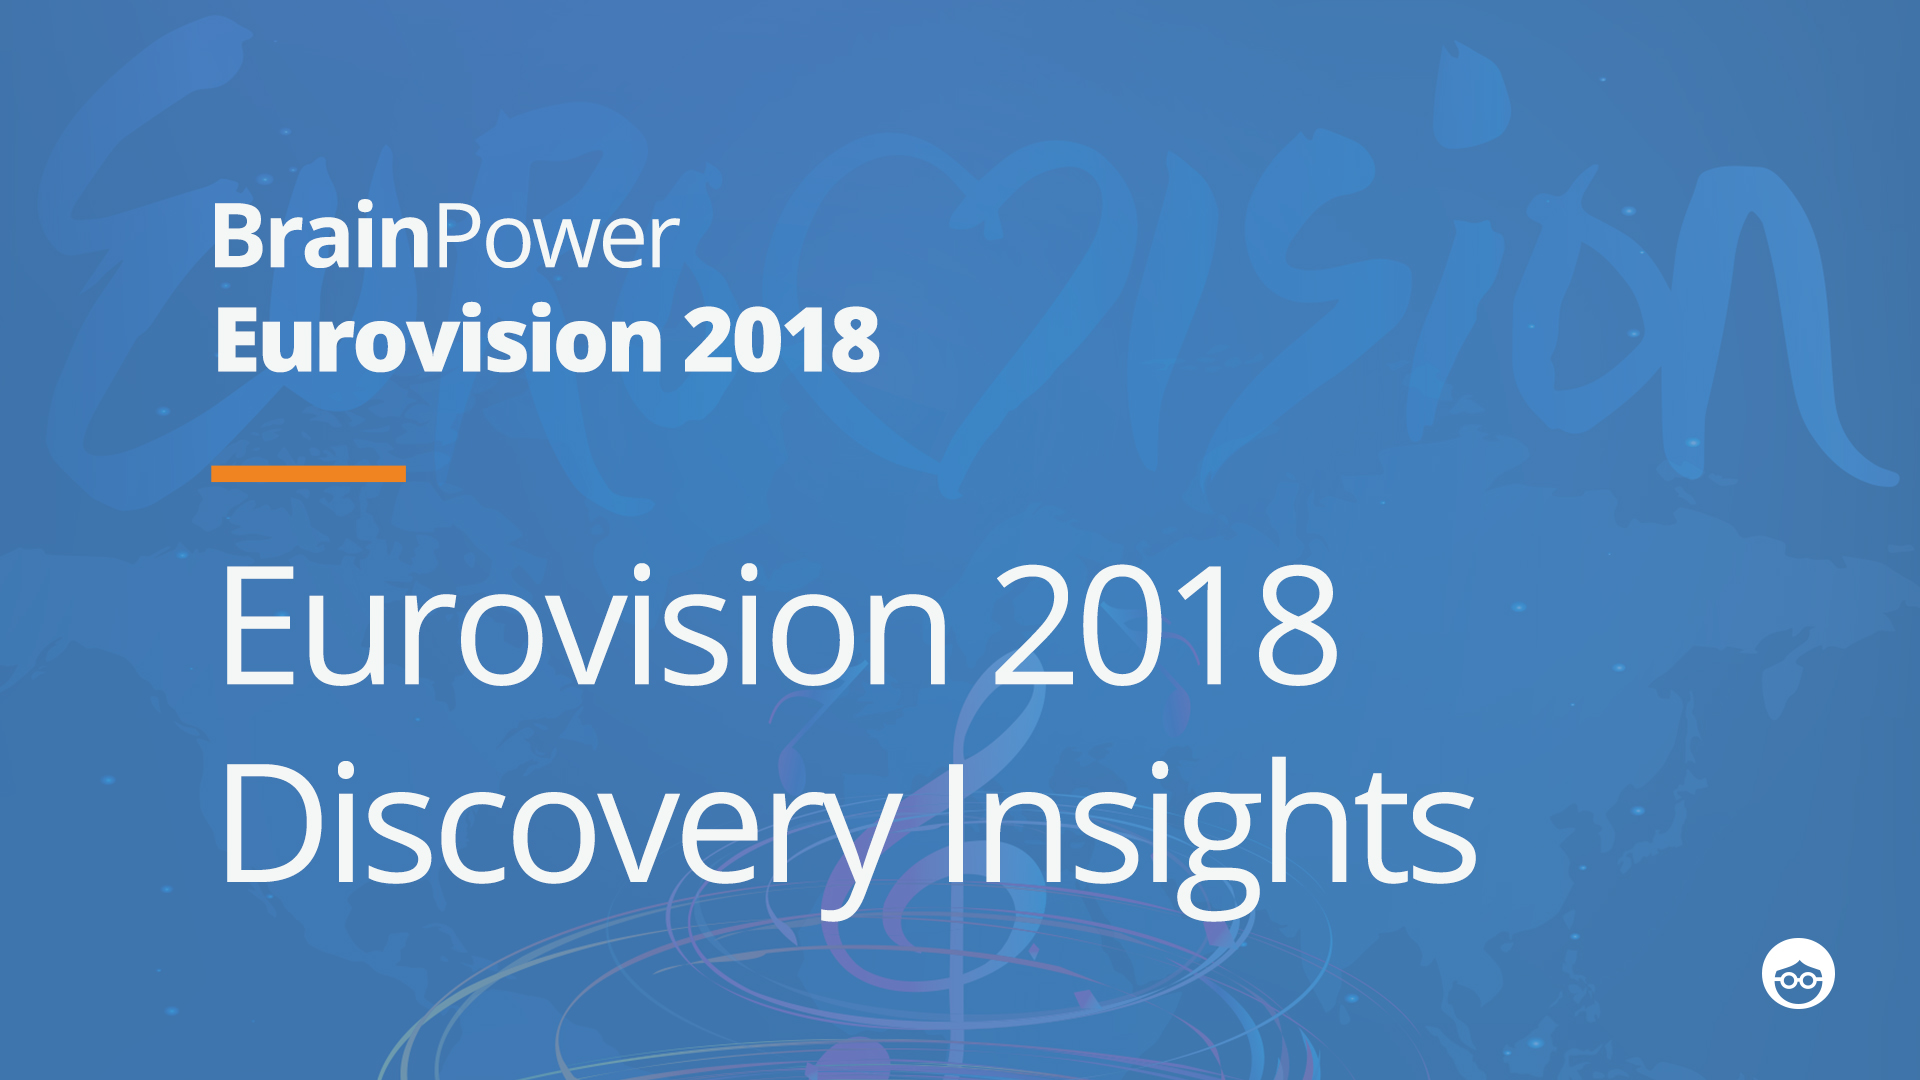 Outbrain eurovision 2018 insights